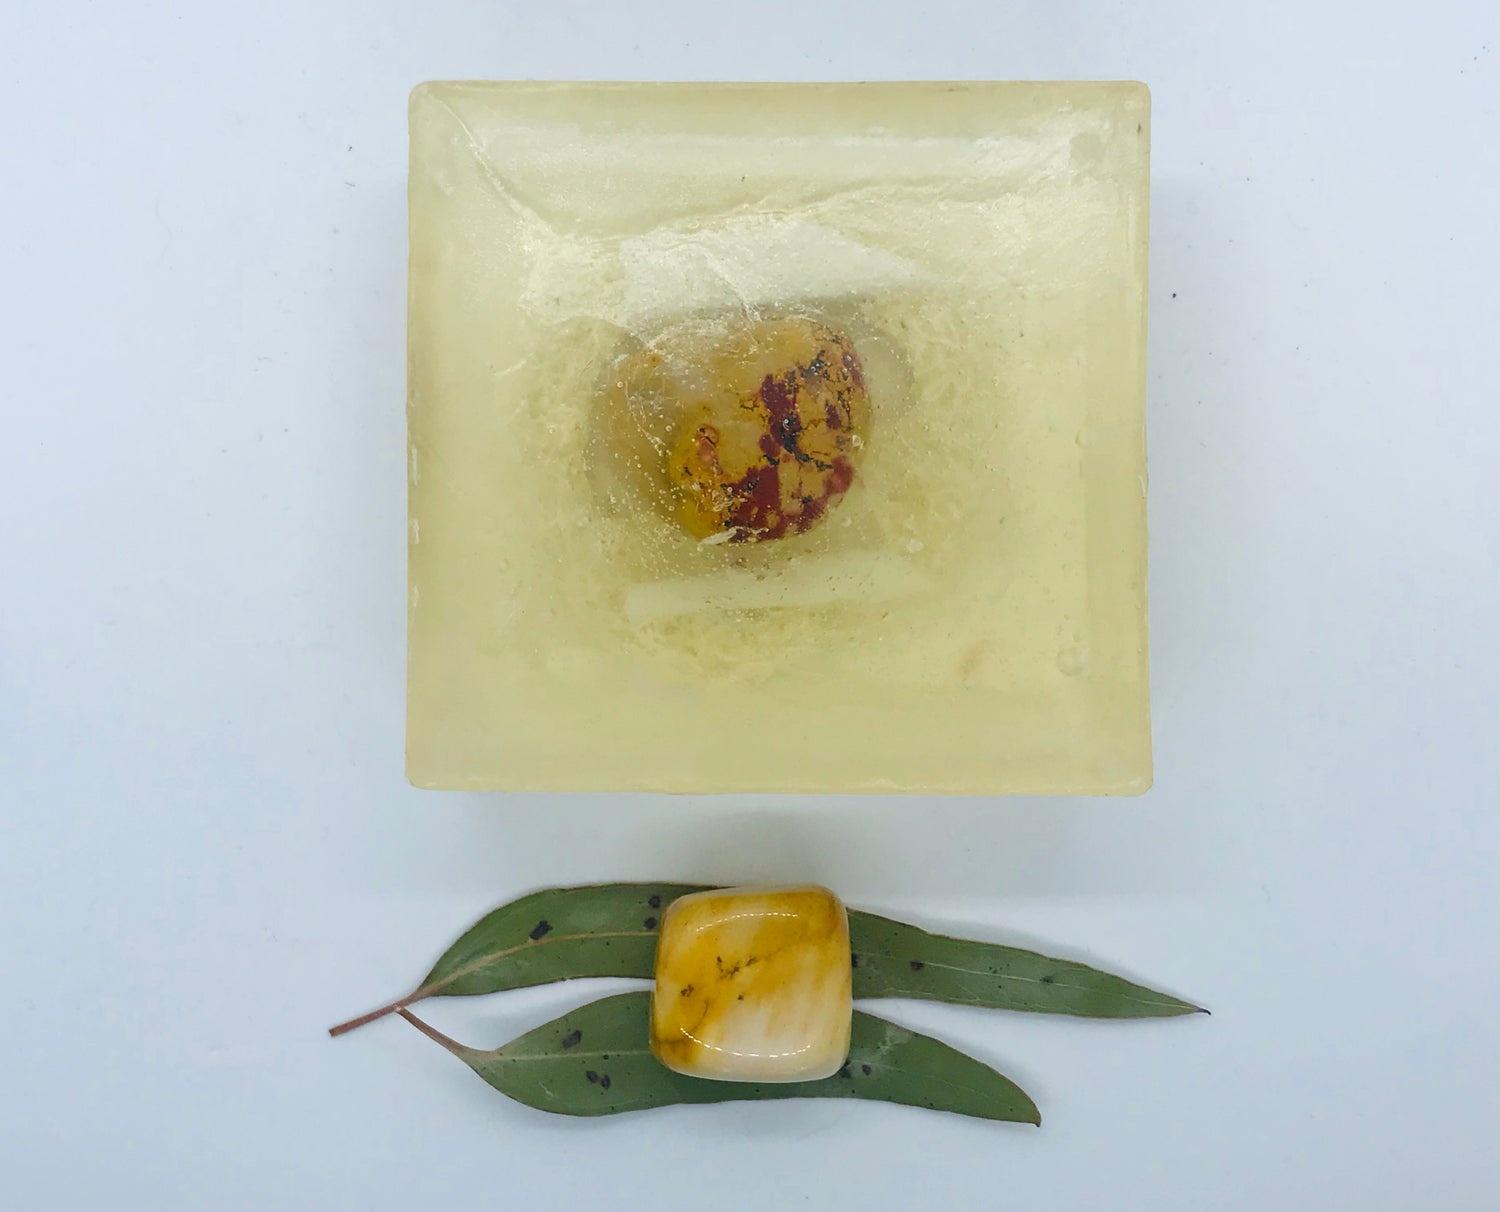 Mookaite Soap with Loofah